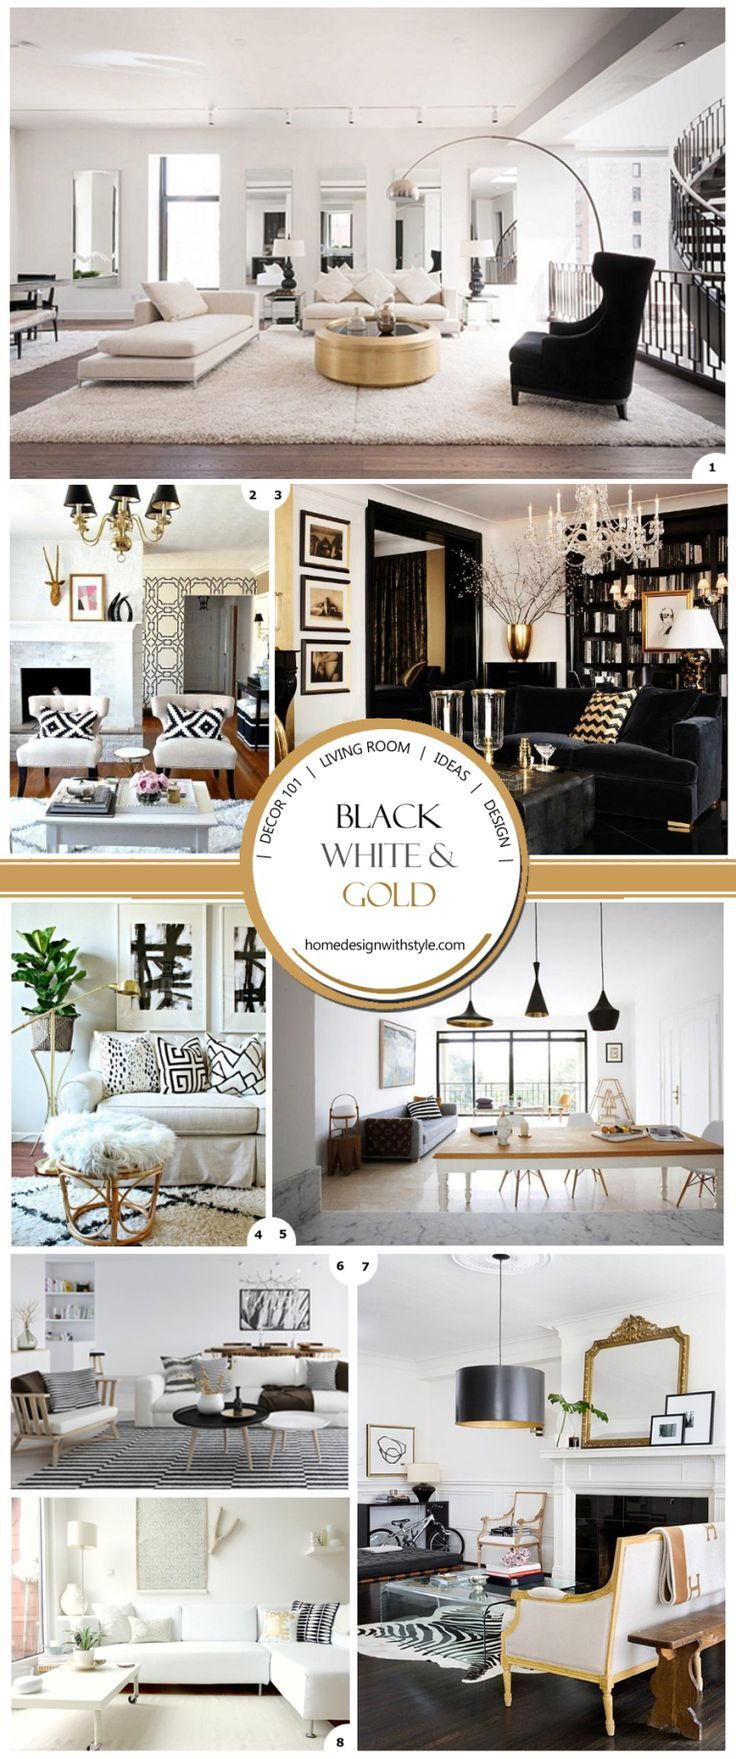 Colors For The Small Bedroom Black And White Eternity For The Small Bedroom Dream Bedrooms Gold Living Room Decor Black And Gold Living Room Silver Living Room